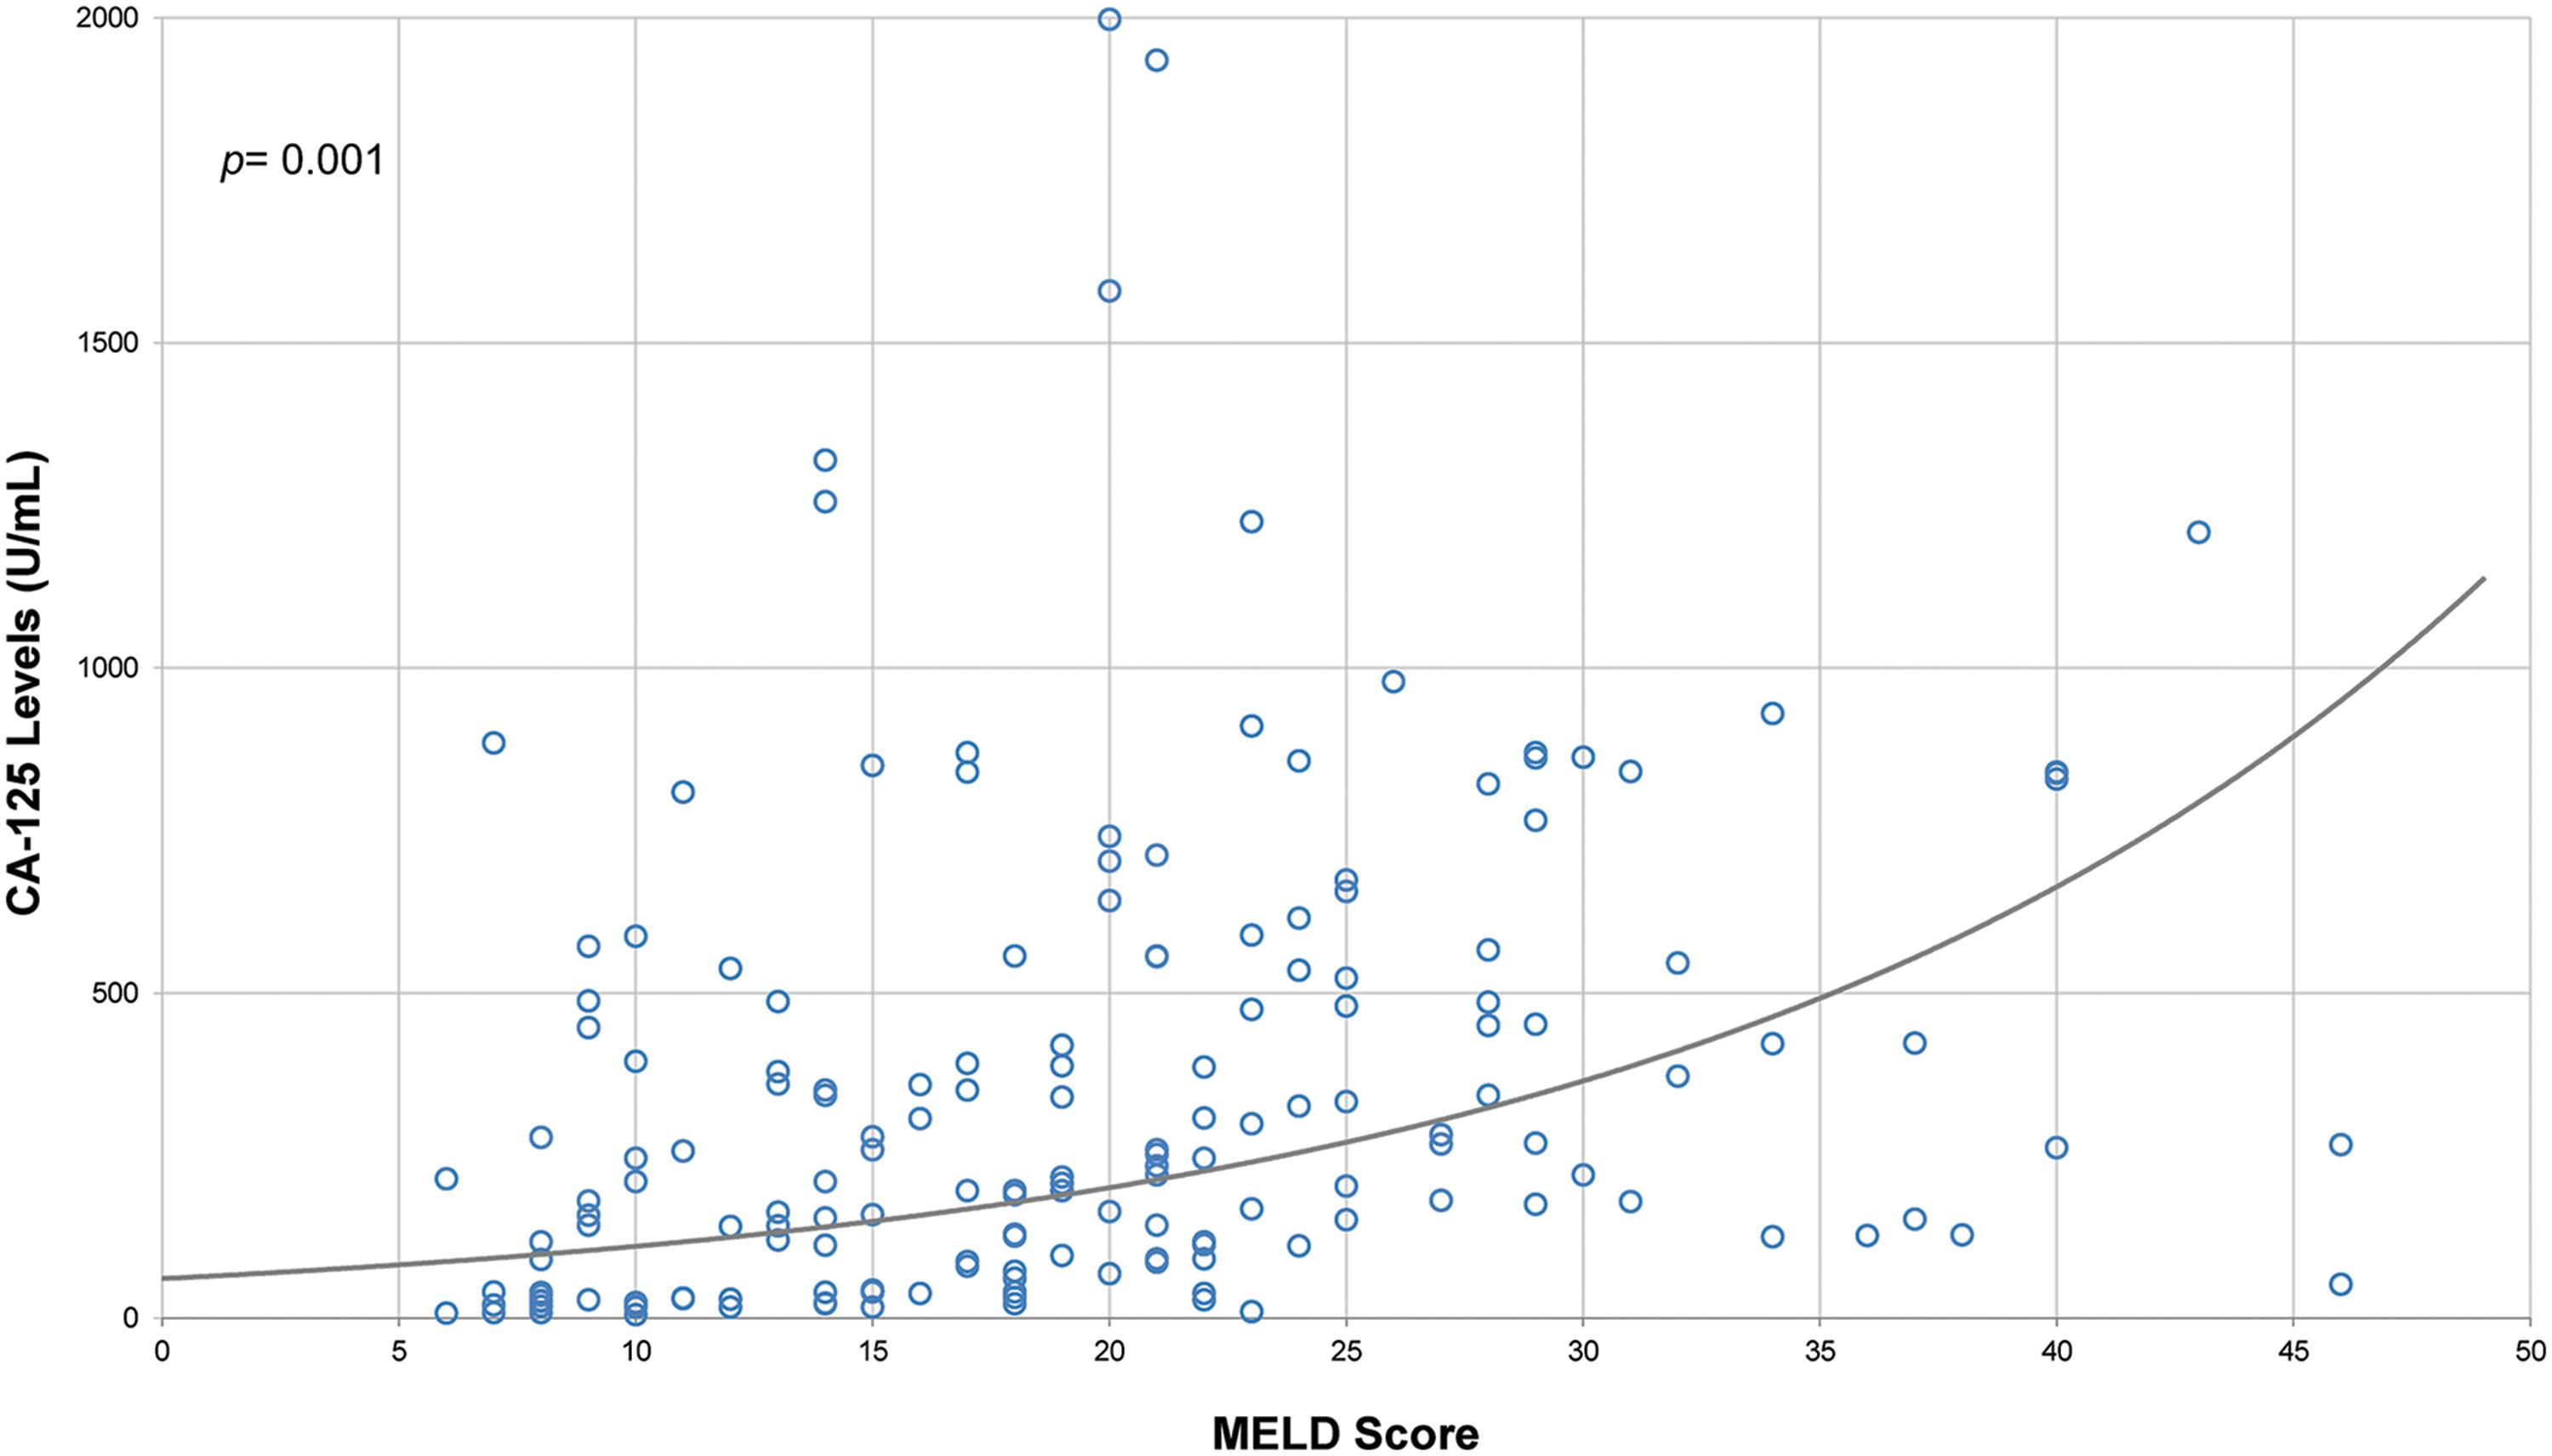 Scatter plot of linear regression analysis of MELD score and CA-125 antigen.